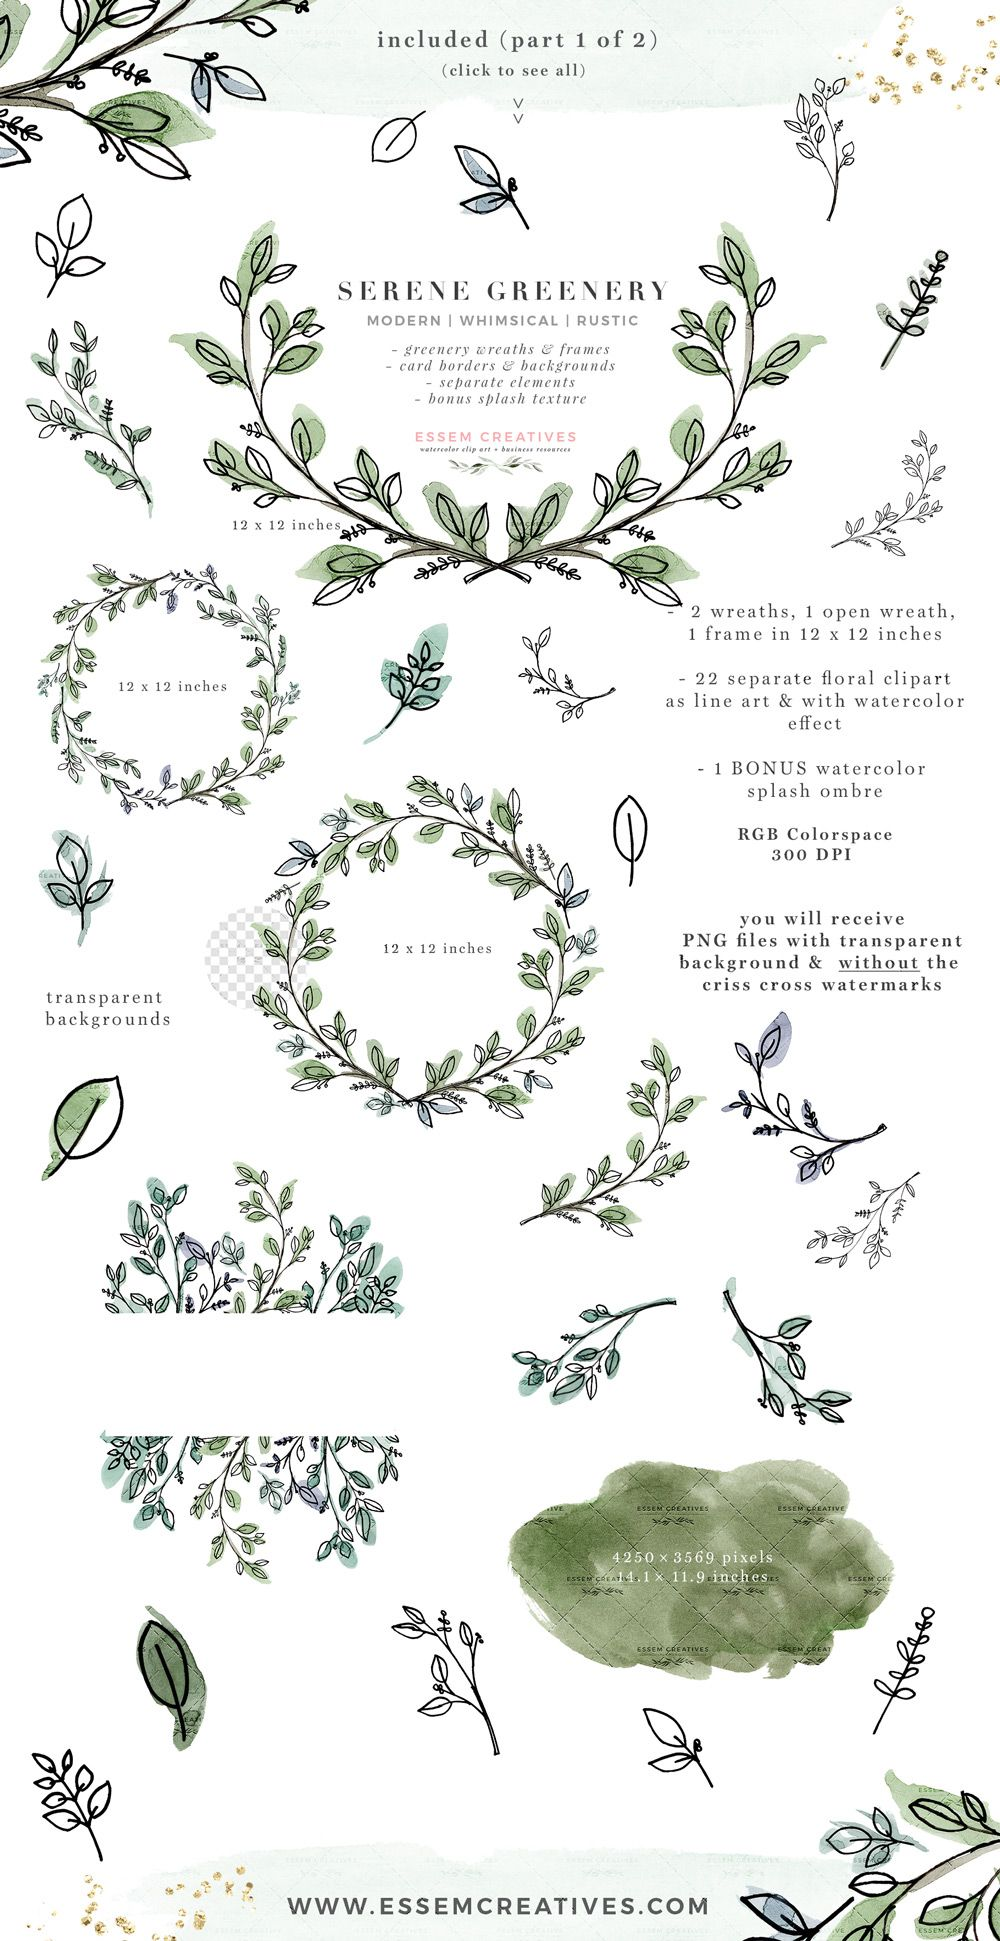 Serene Greenery Watercolor Leaves Clipart, Rustic Botanical.